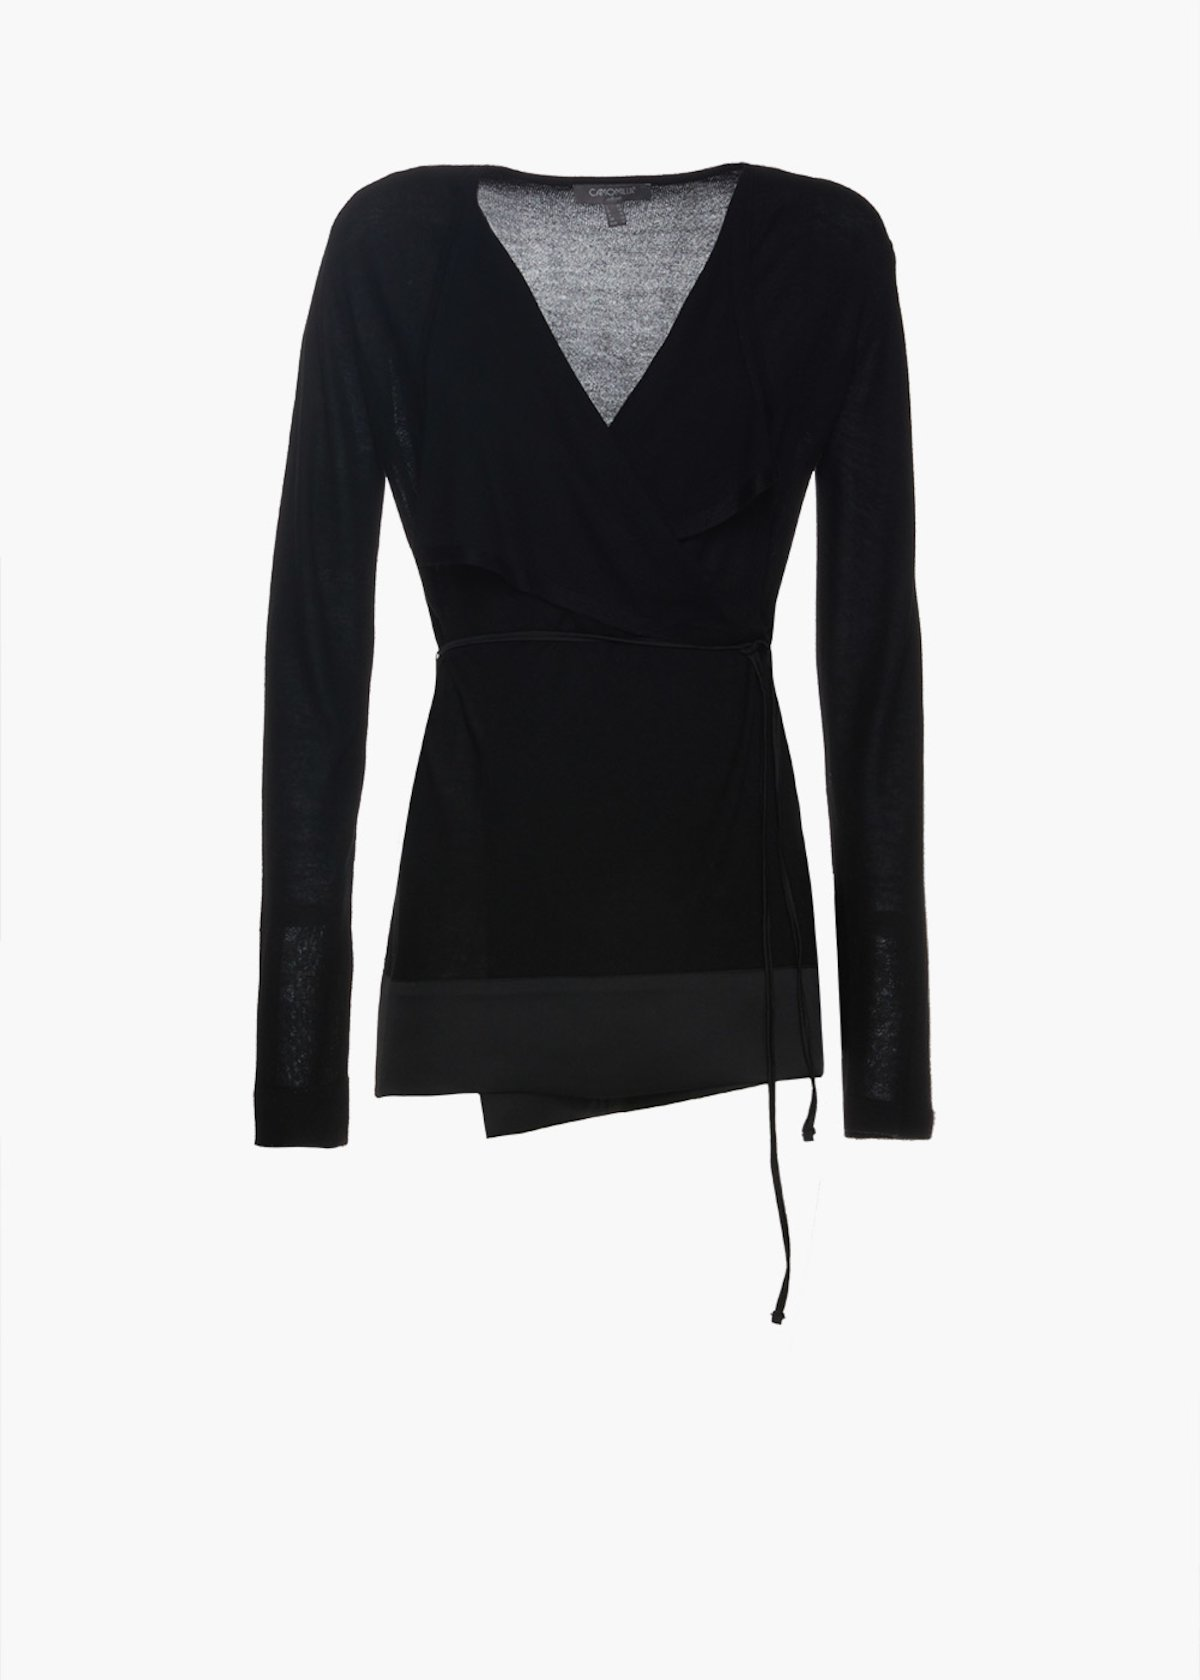 Knitting cardigan Camy with satin detail - Black - Woman - Category image